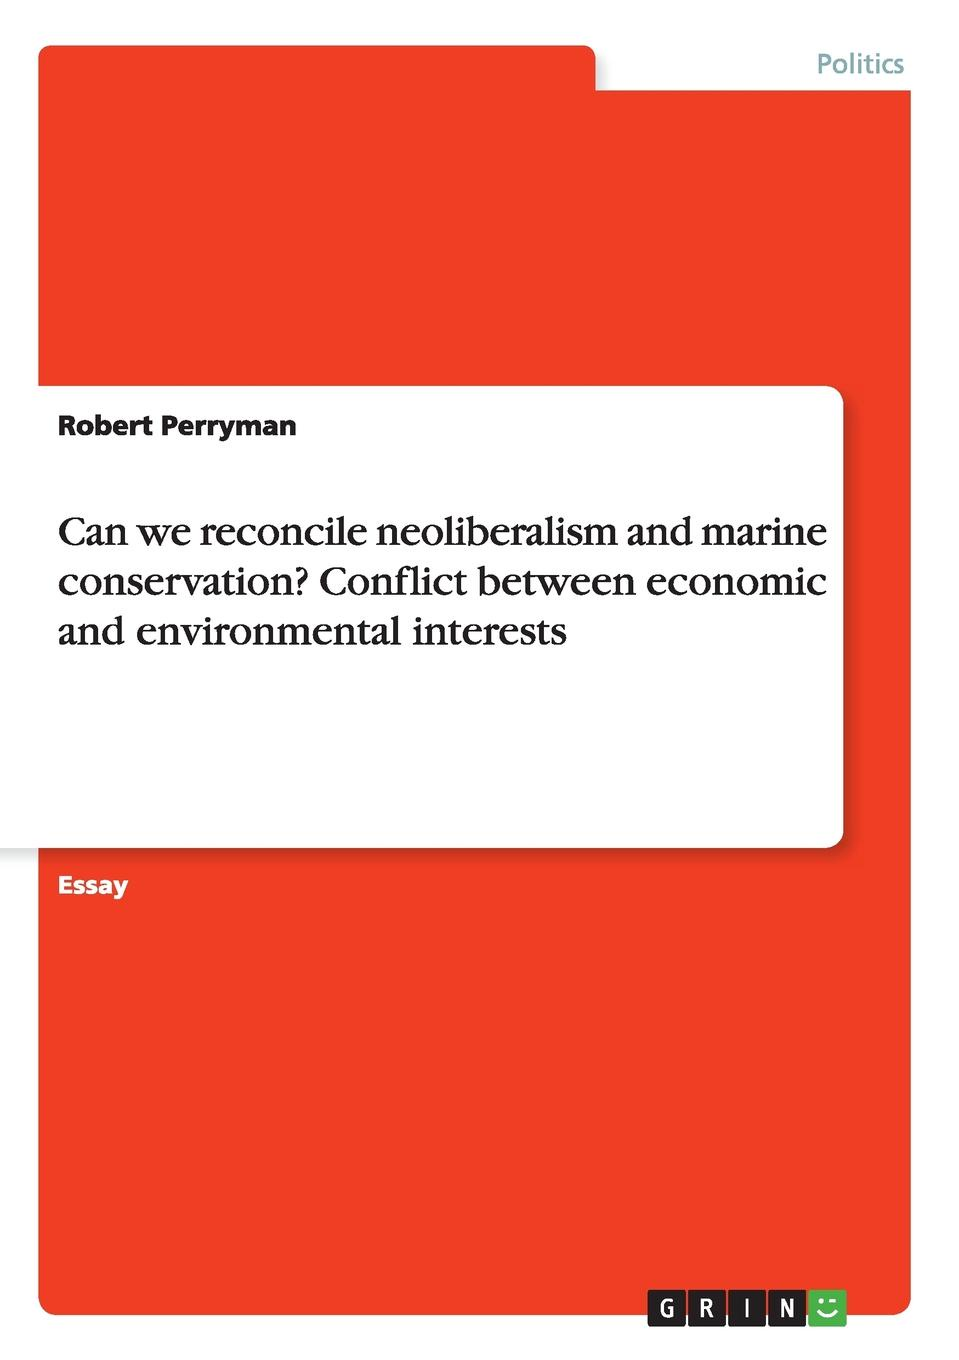 Robert Perryman Can we reconcile neoliberalism and marine conservation. Conflict between economic and environmental interests robert perryman can we reconcile neoliberalism and marine conservation conflict between economic and environmental interests